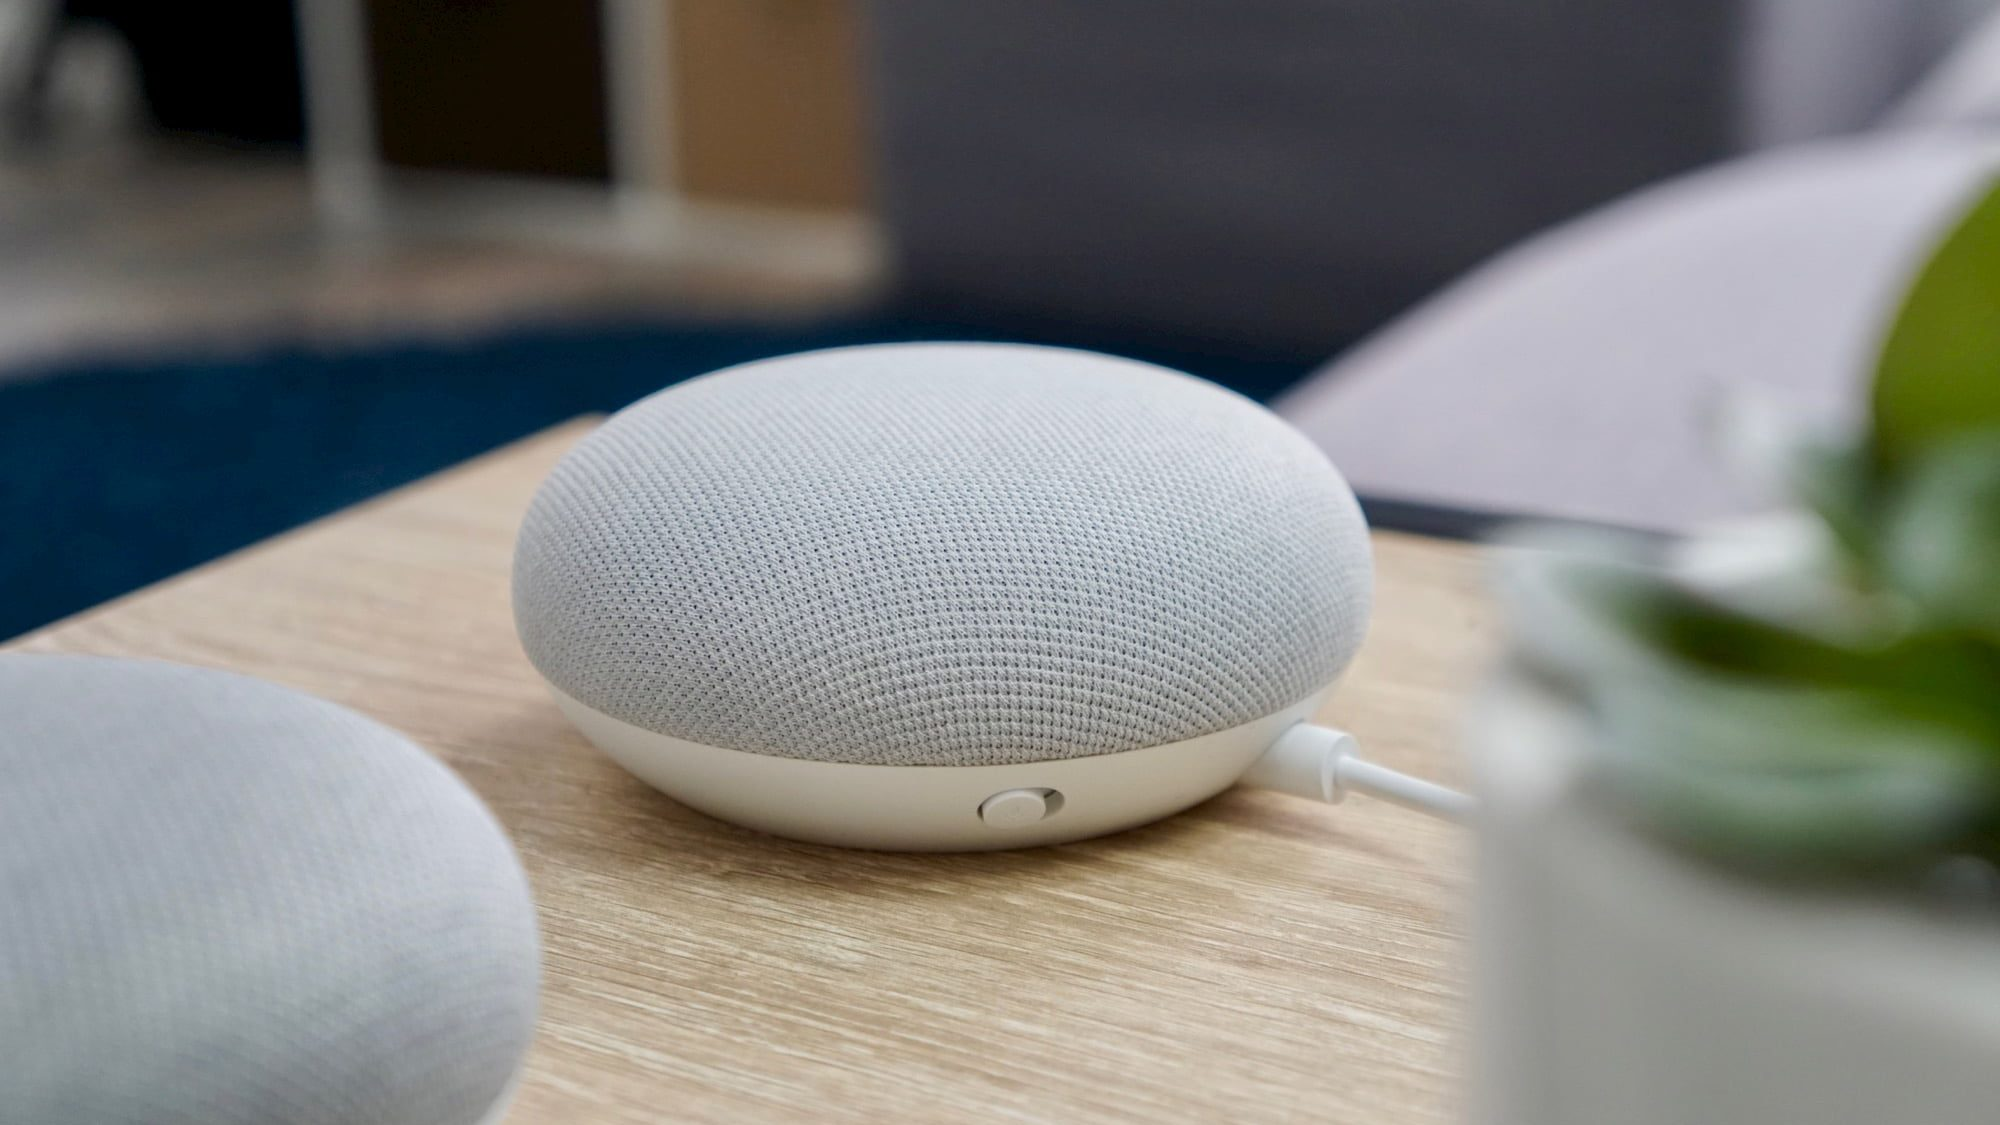 Snag a free Nest Mini while you wait for new Google hardware on September 30th